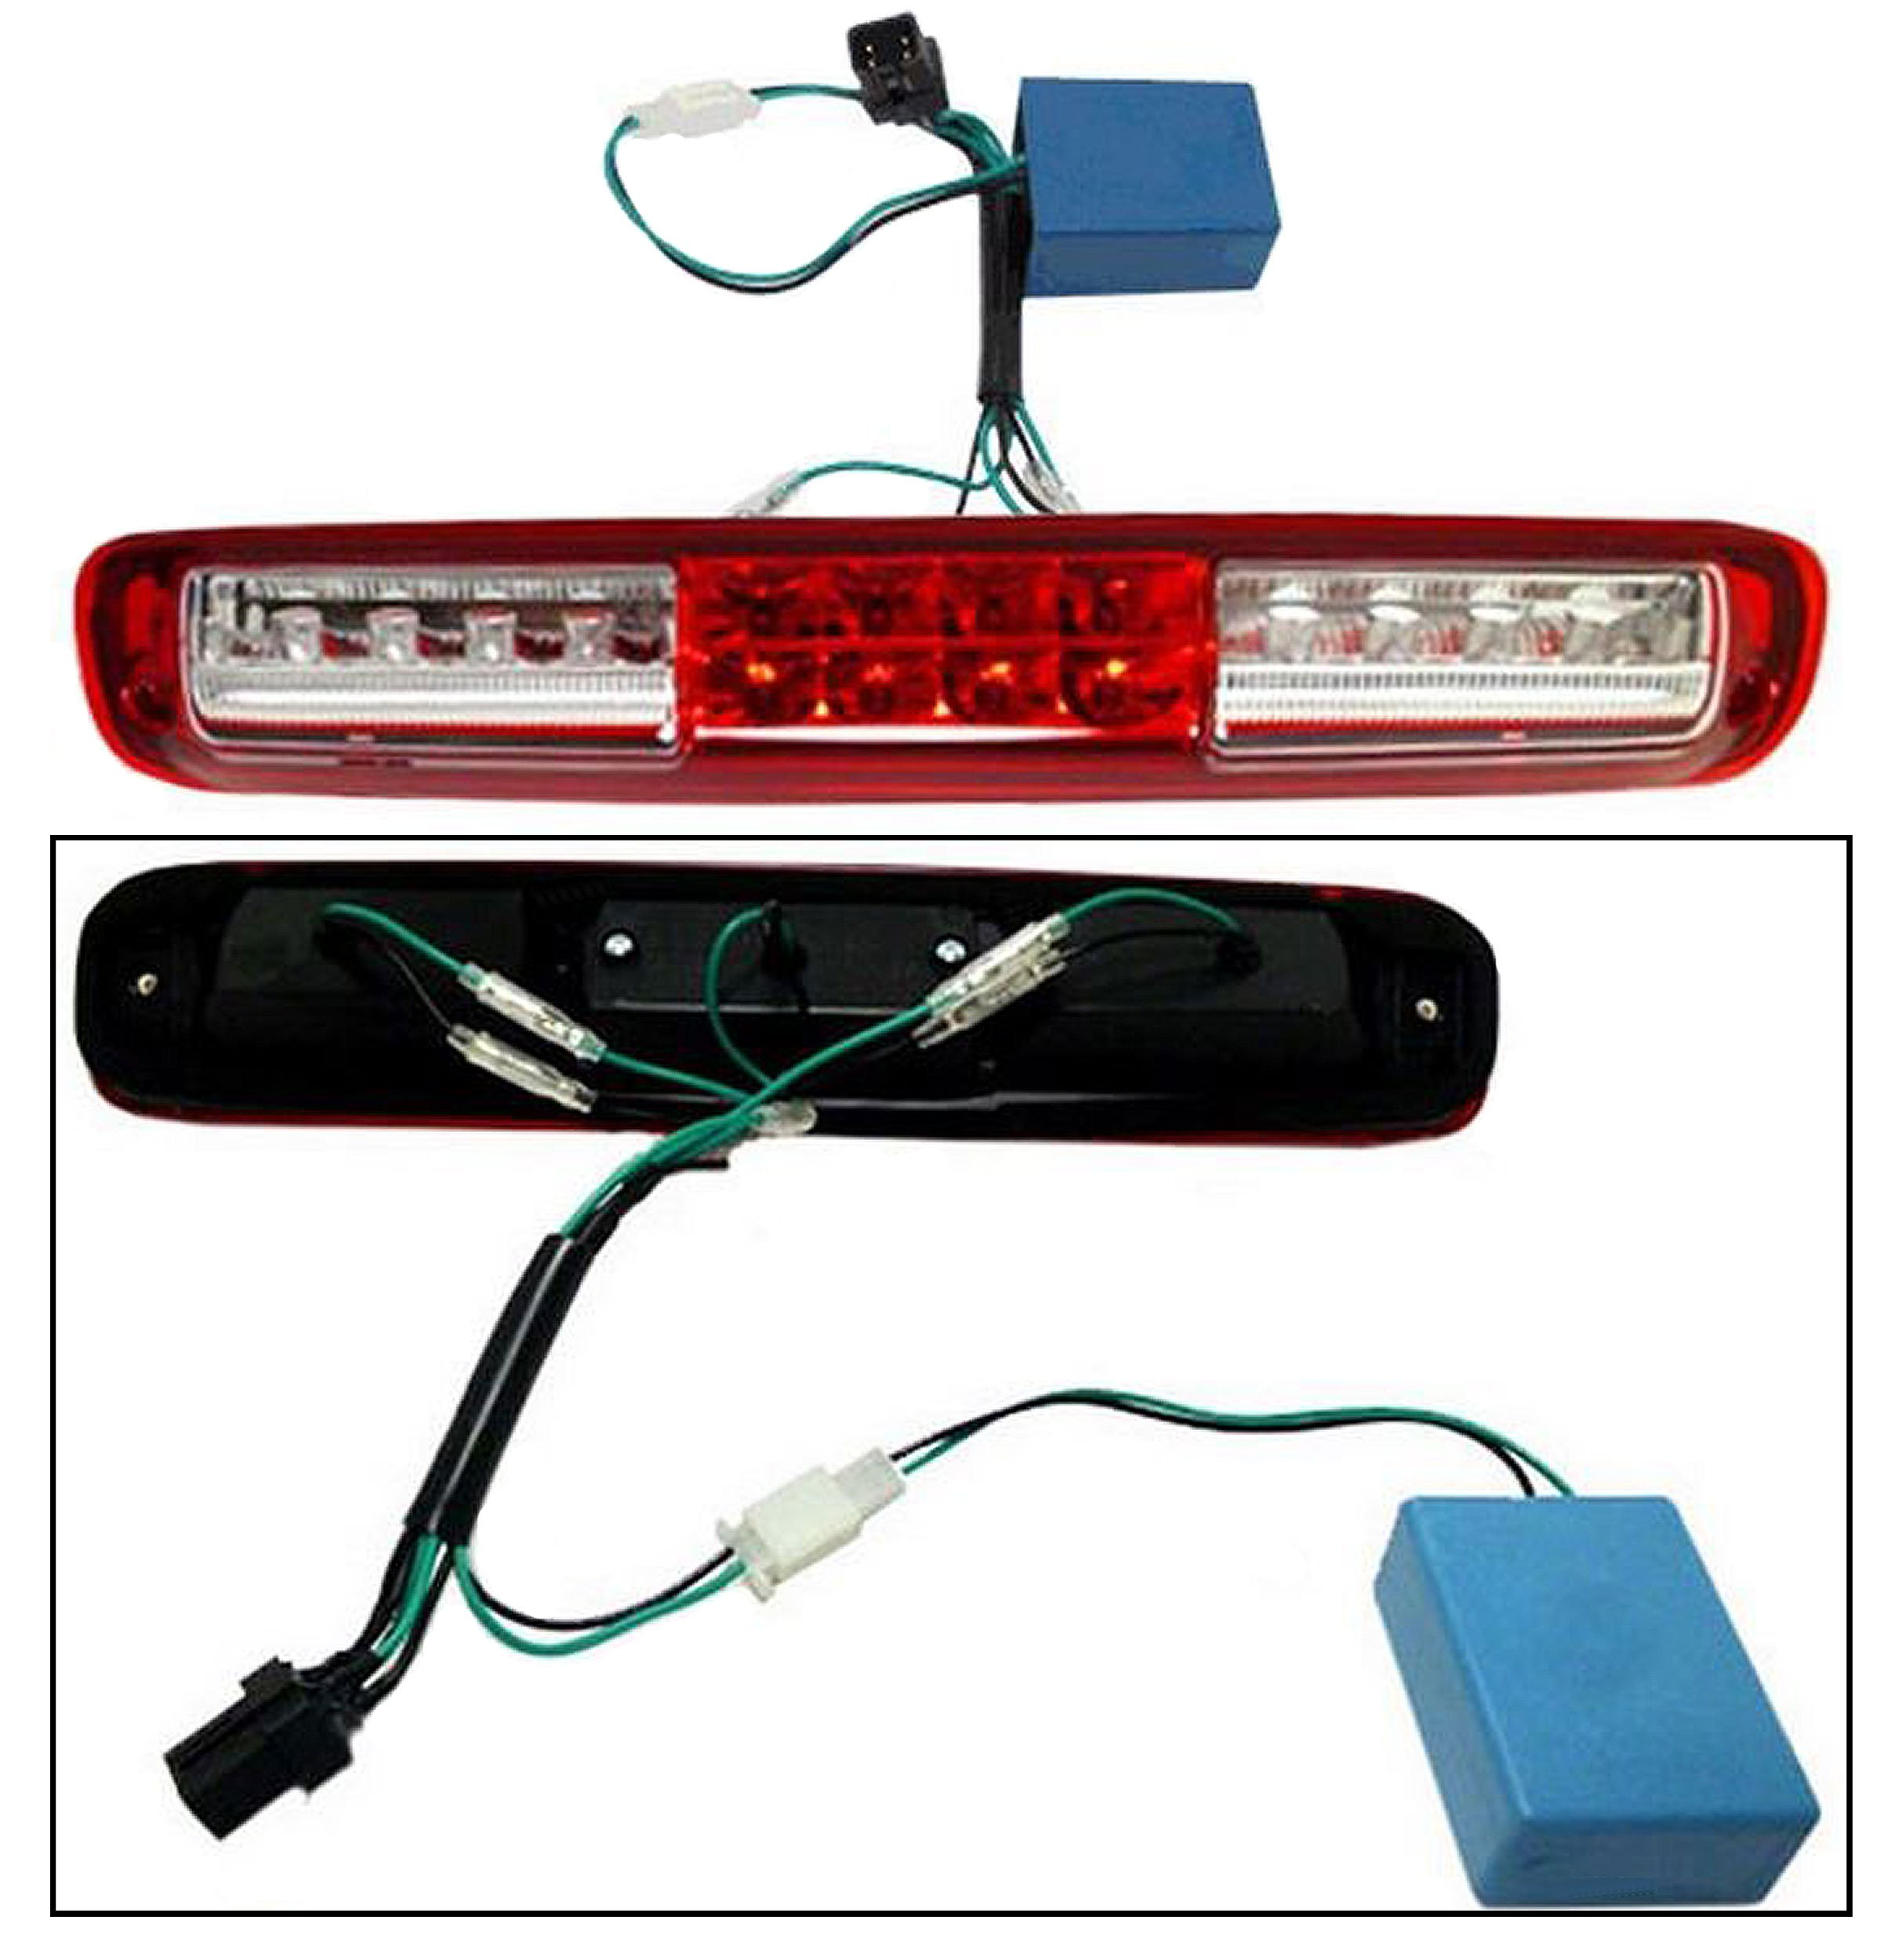 APDTY 5978318 Third 3rd High Center Mount Brake Light Lamp Assembly For 1999-2007 Chevy Silverado / 1999-2007 GMC Sierra (2007 Classic Models Only) (Upgraded LED Design)